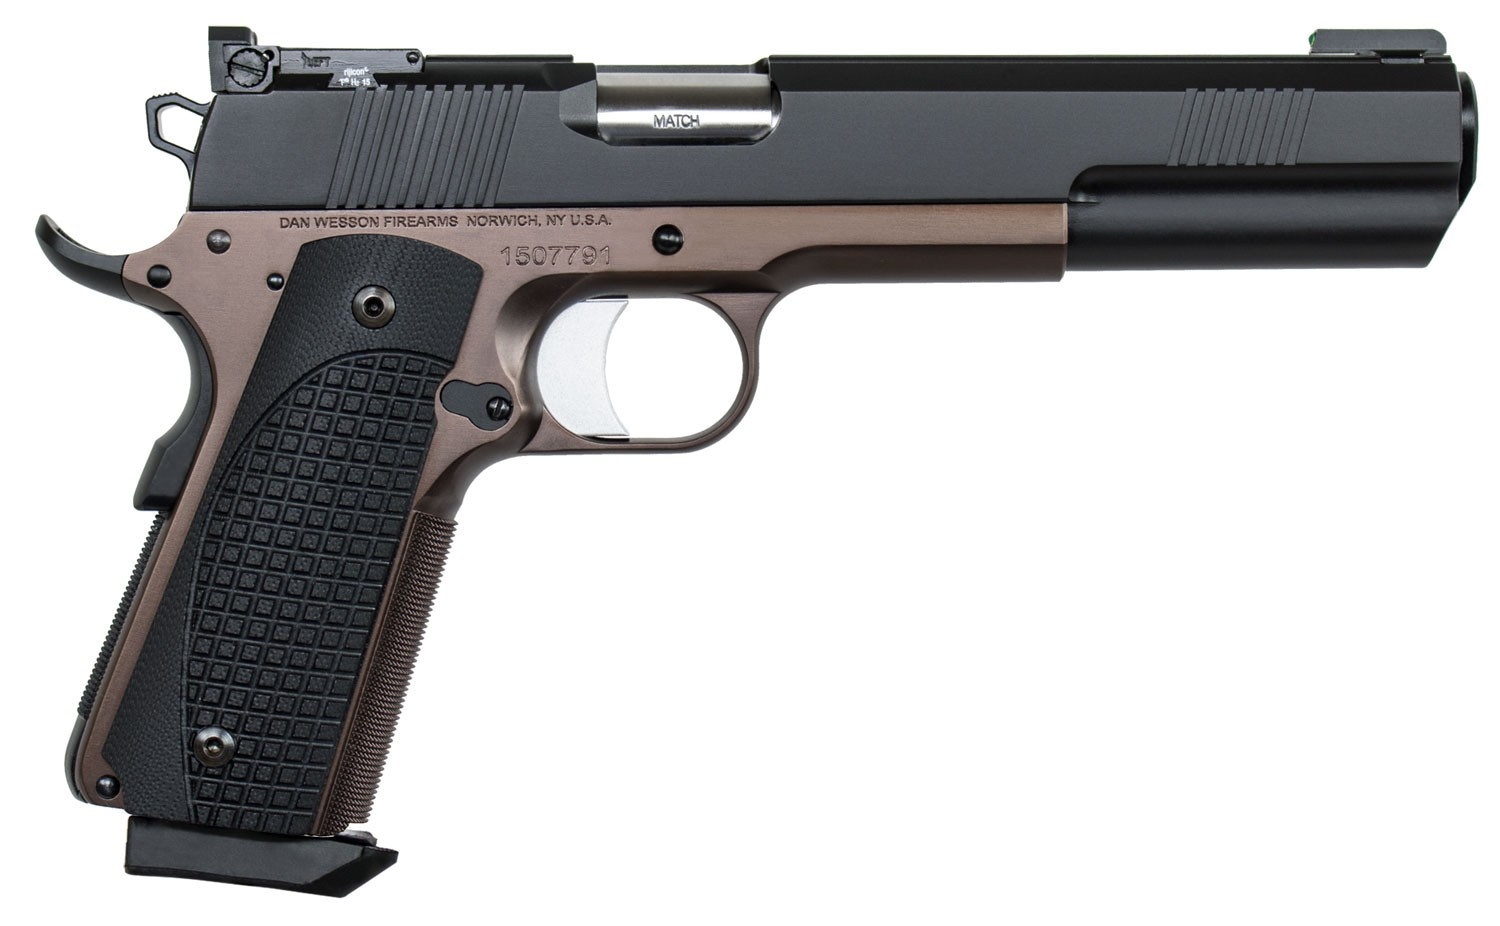 Dan Wesson 01841 Bruin 10mm Auto 6.03in. 8+1 Bronze Duty Finish Stainless Steel Brown G10 Grip